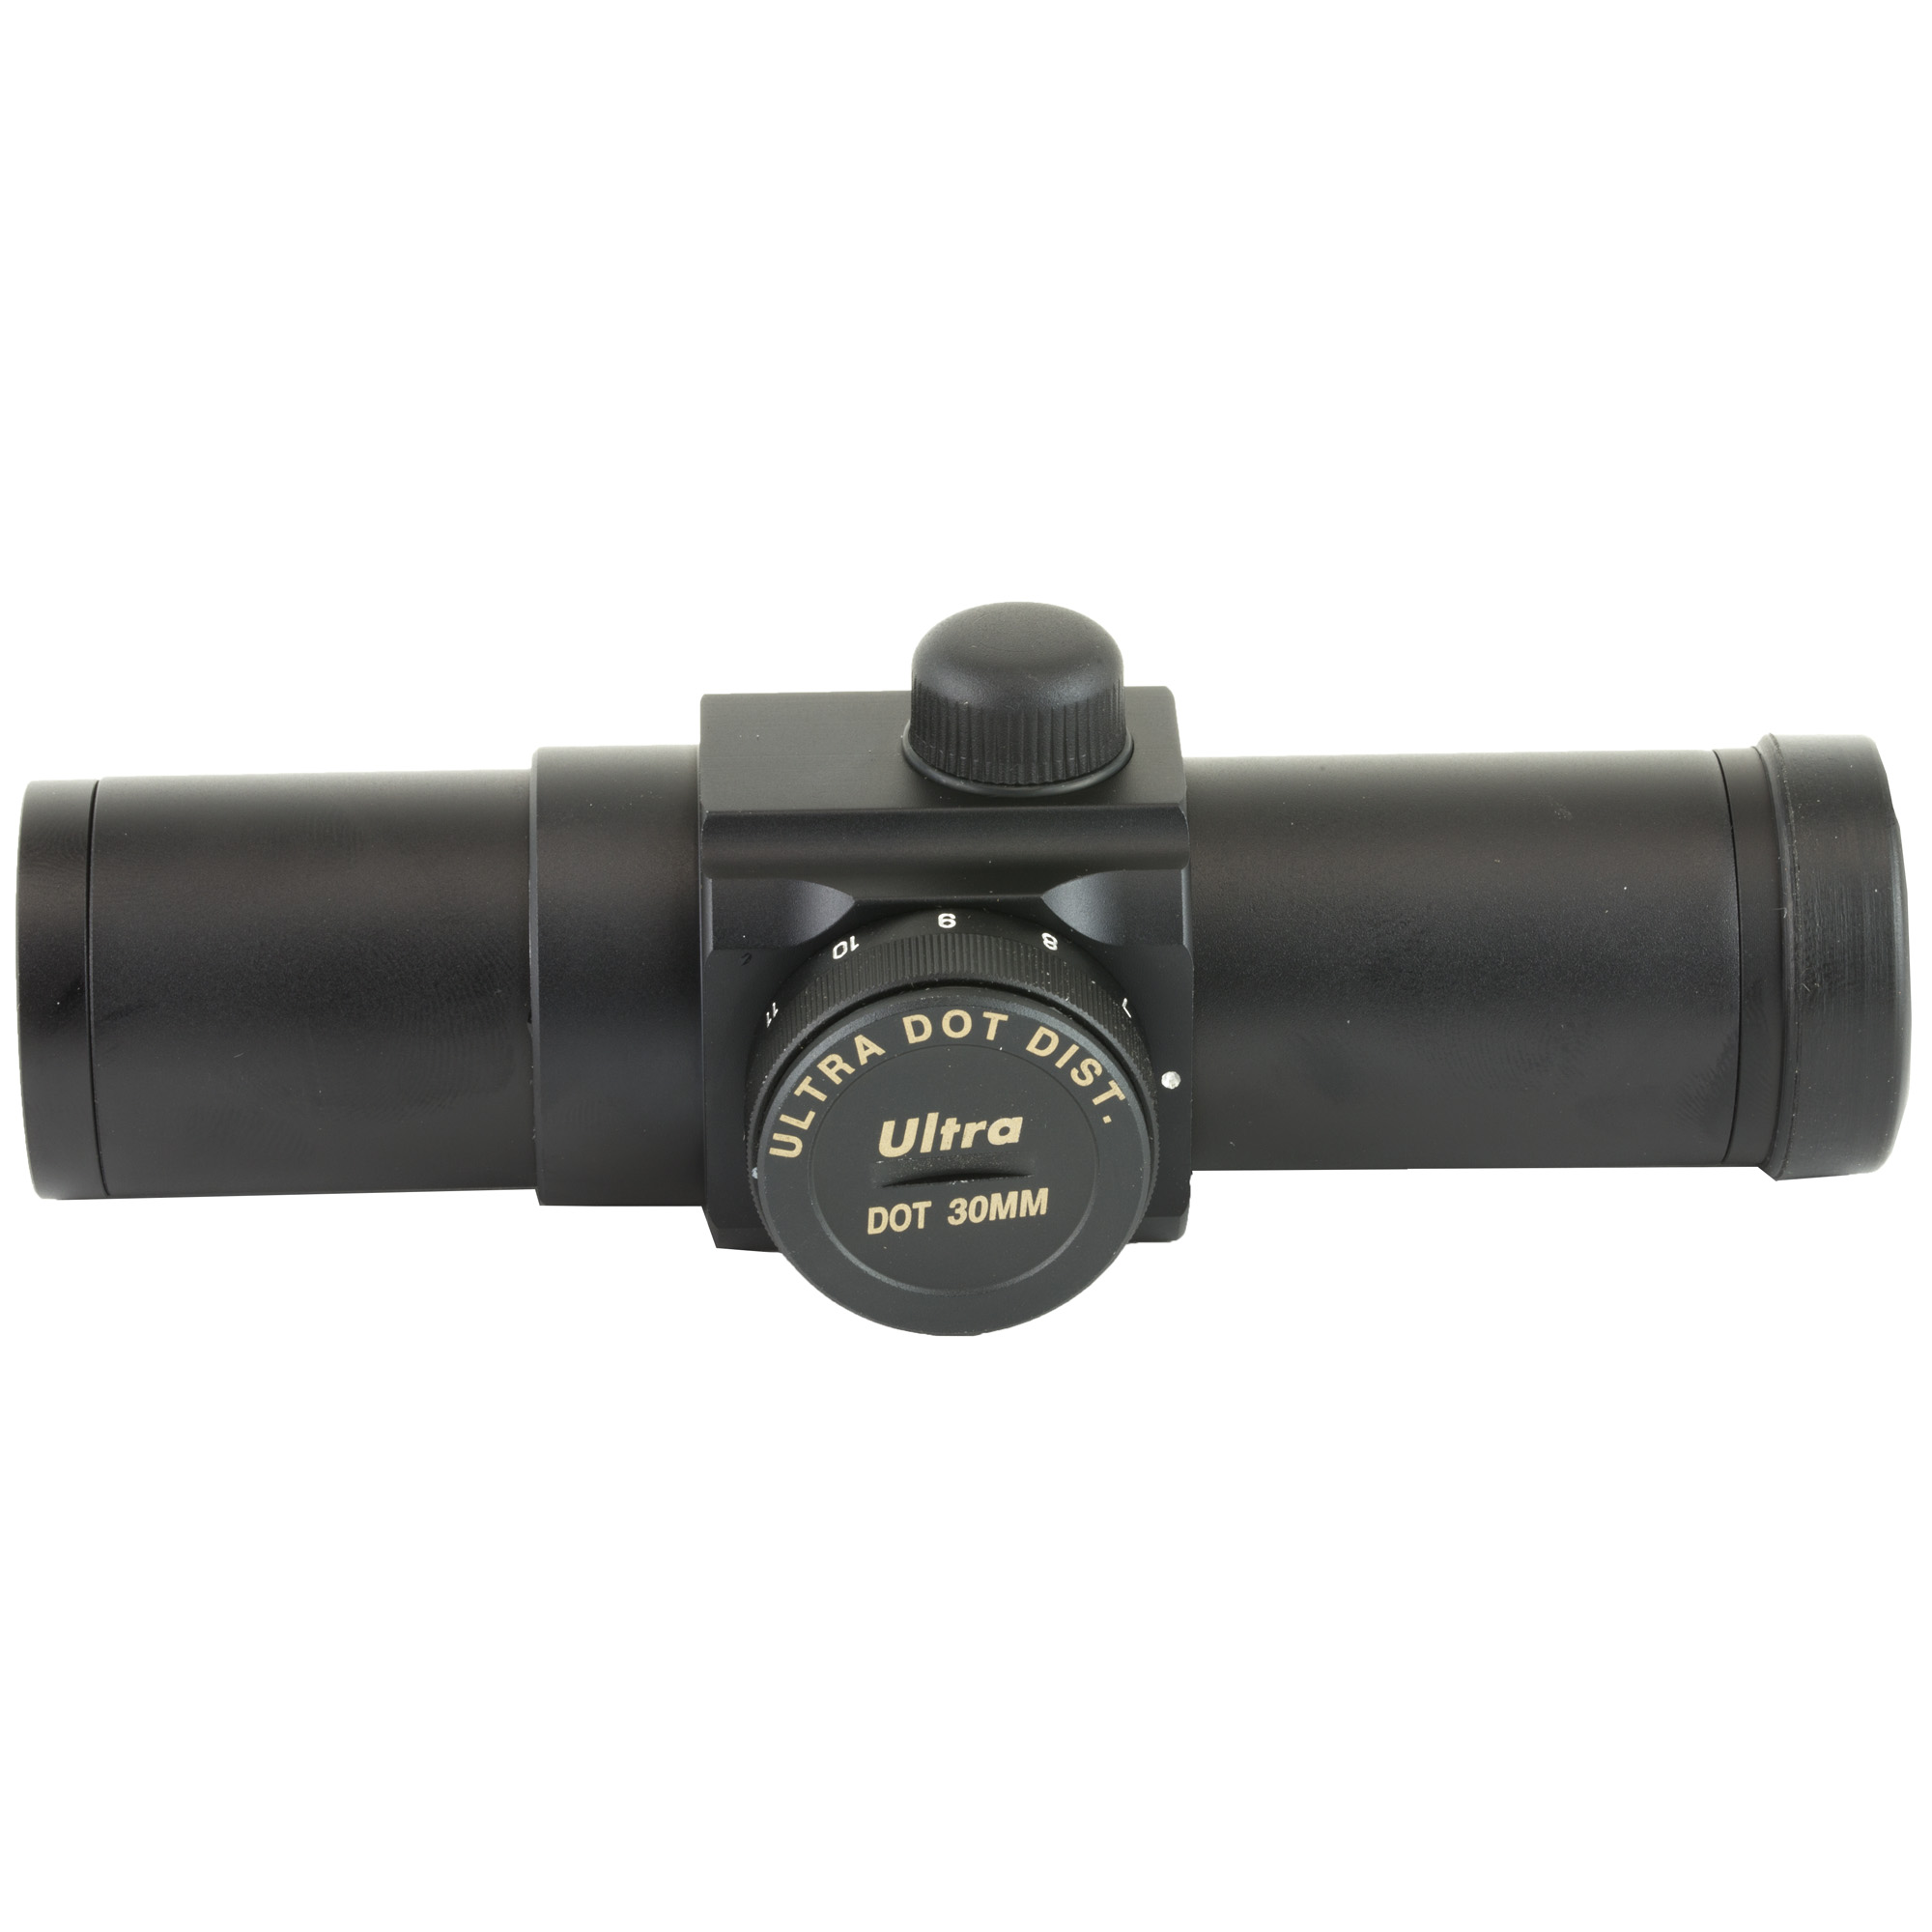 """The Ultradot 30 is only 5.1 inches long and weighs just 4.1 oz. 30mm diameter tube and click adjustable brightness control. Every sight comes complete with a battery"""" polarizing filter"""" tube extension"""" mounting rings and hex wrenches. Every Ultradot sight has a LIFETIME WARRANTY."""